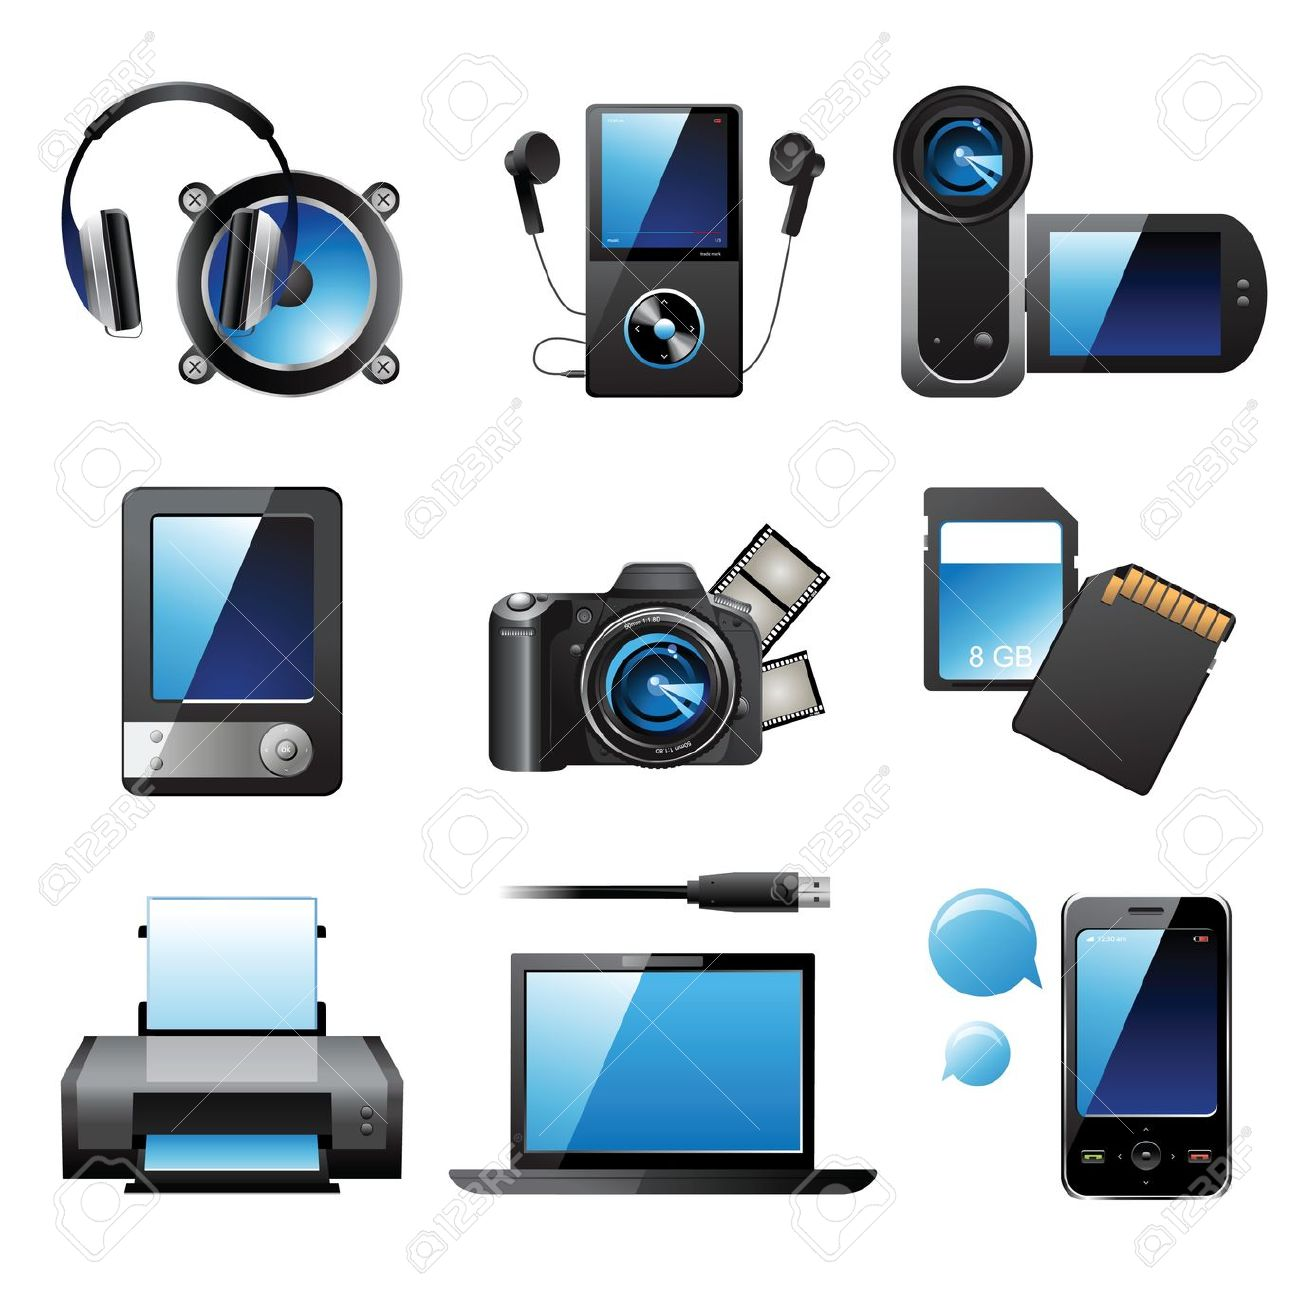 Electronic devices clipartfest icons. Clipart electronics